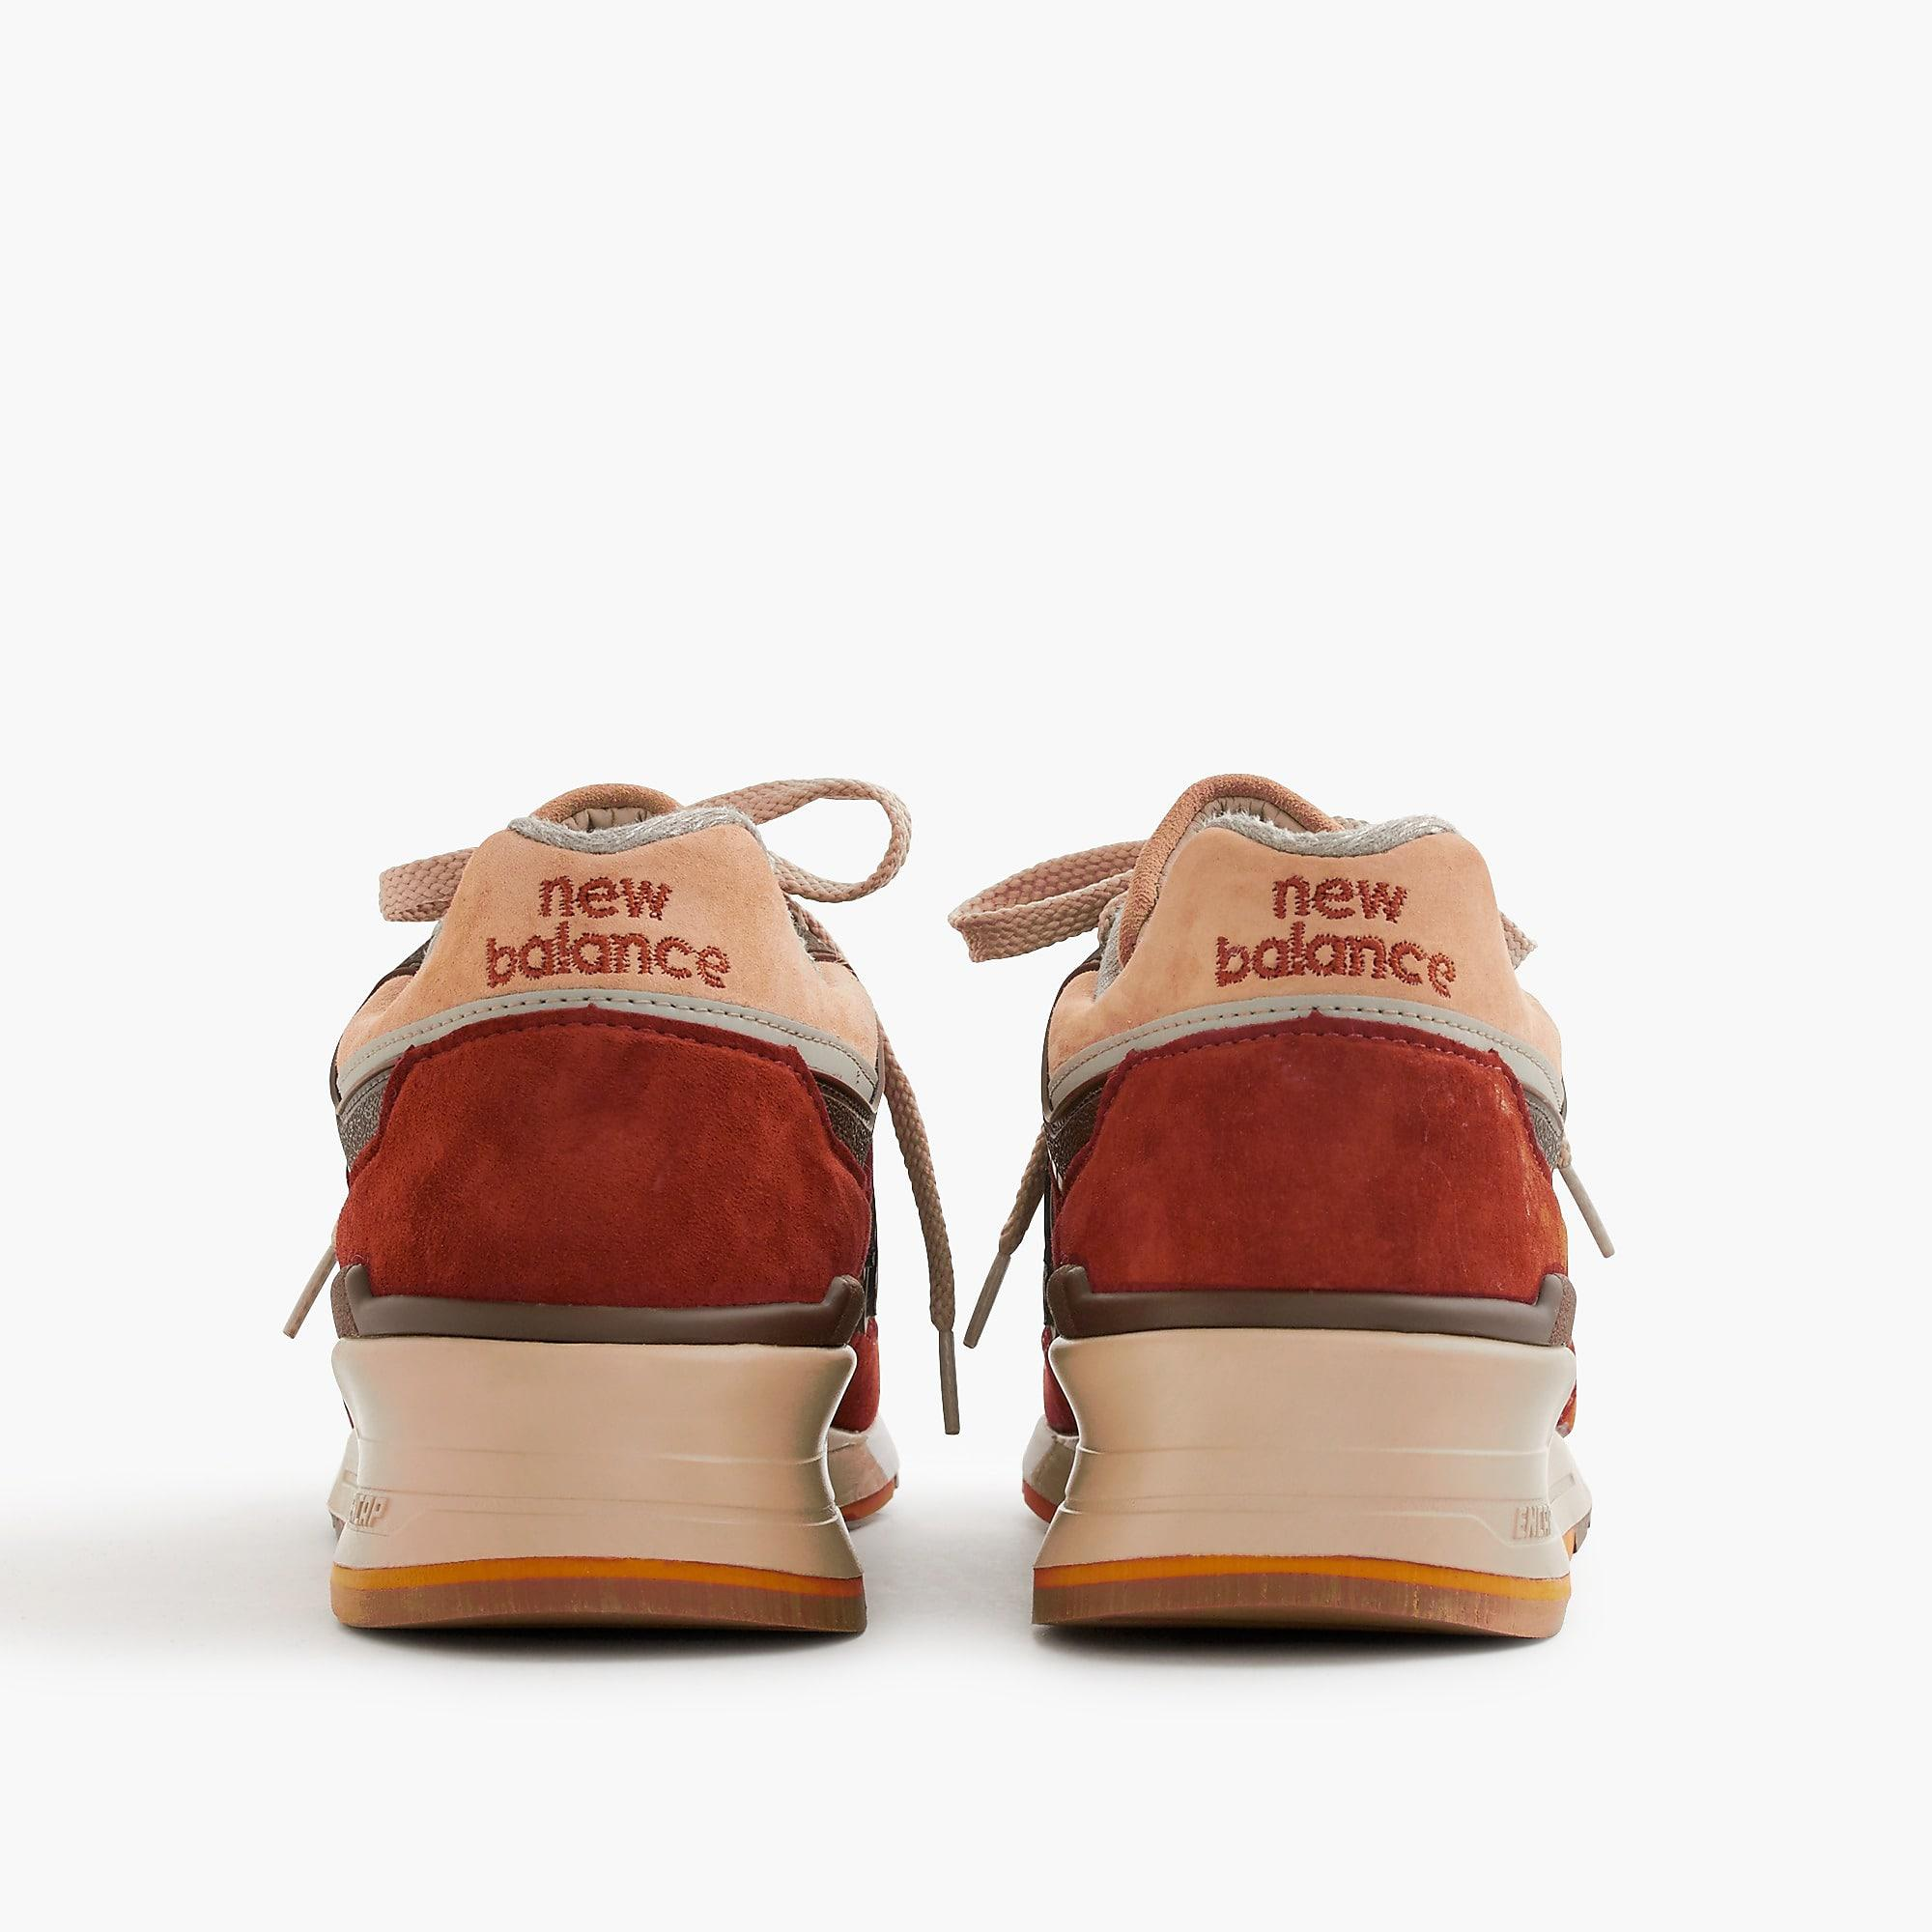 separation shoes 42c0d 0f1f8 Men's Red 997 Butterscotch Sneakers